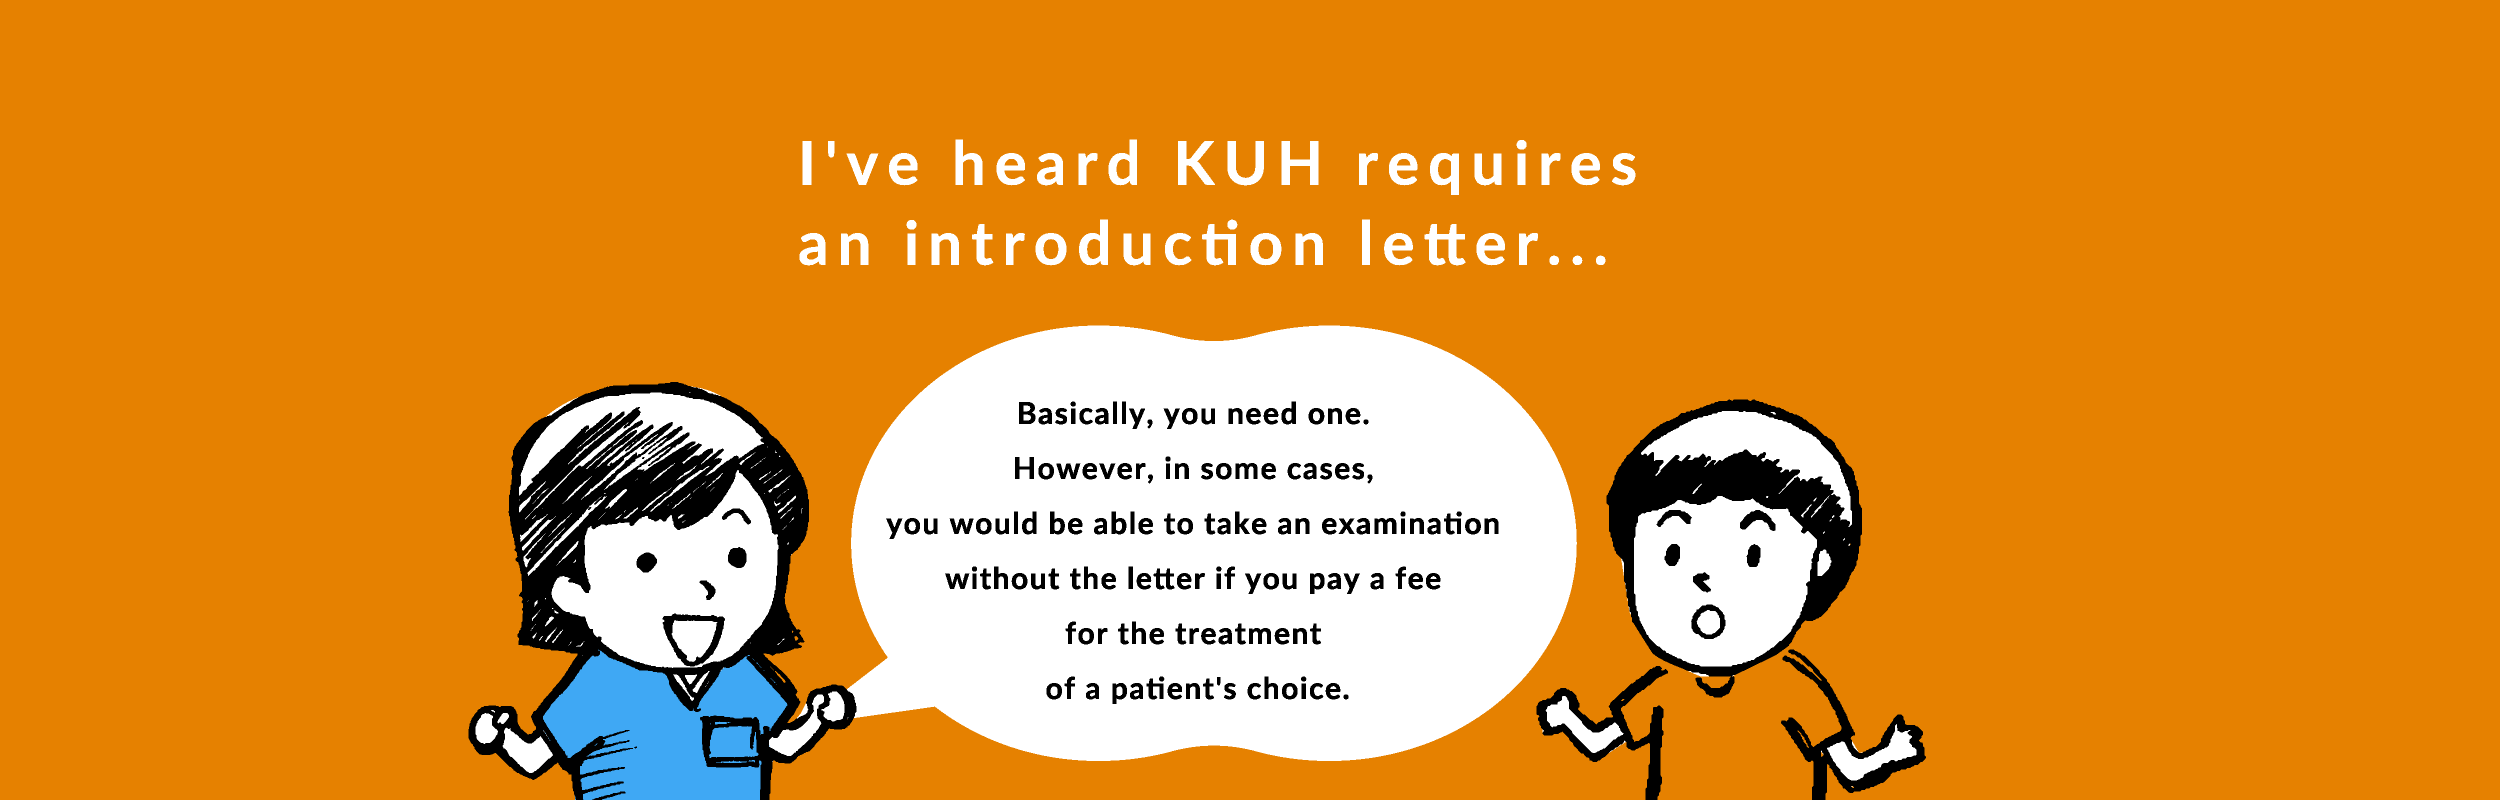 Basically, you need one. However, in some cases, you would be able to take an examination without the letter if you pay a fee for the treatment of a patient's choice.